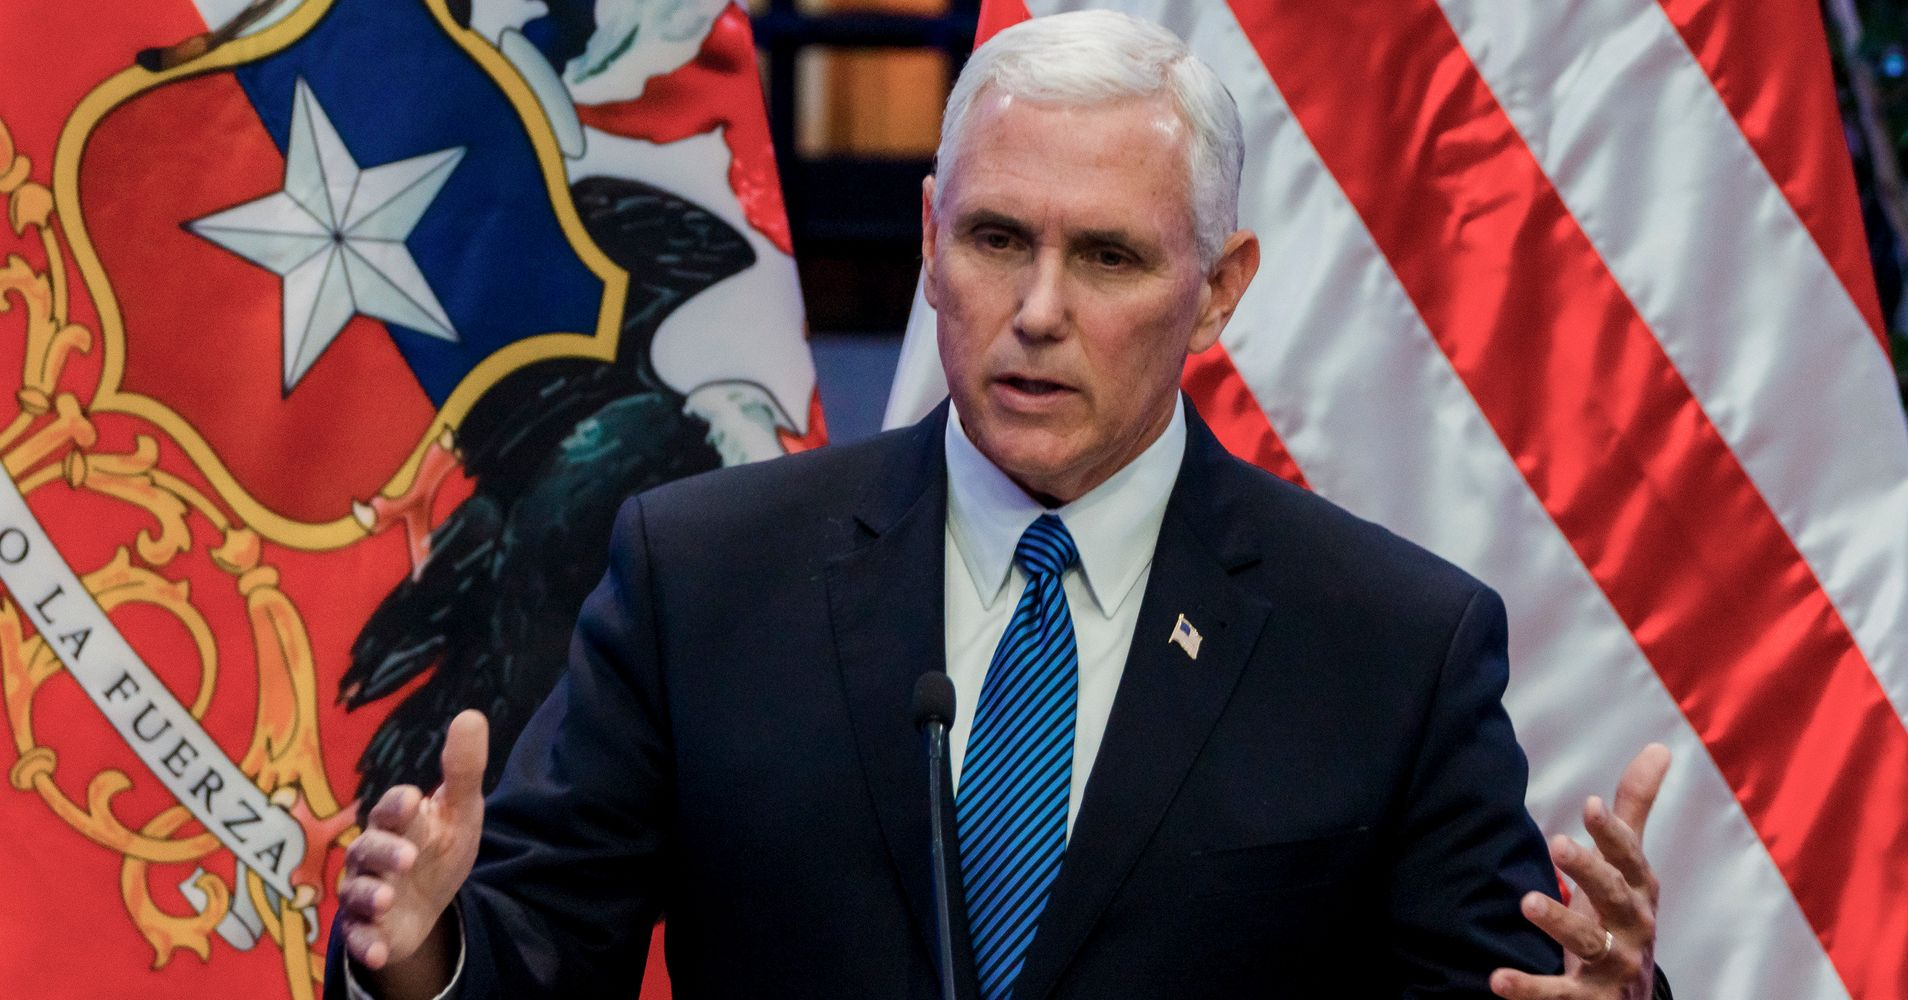 Mike Pence Says He 'Stands With The President' On Charlottesville   HuffPost